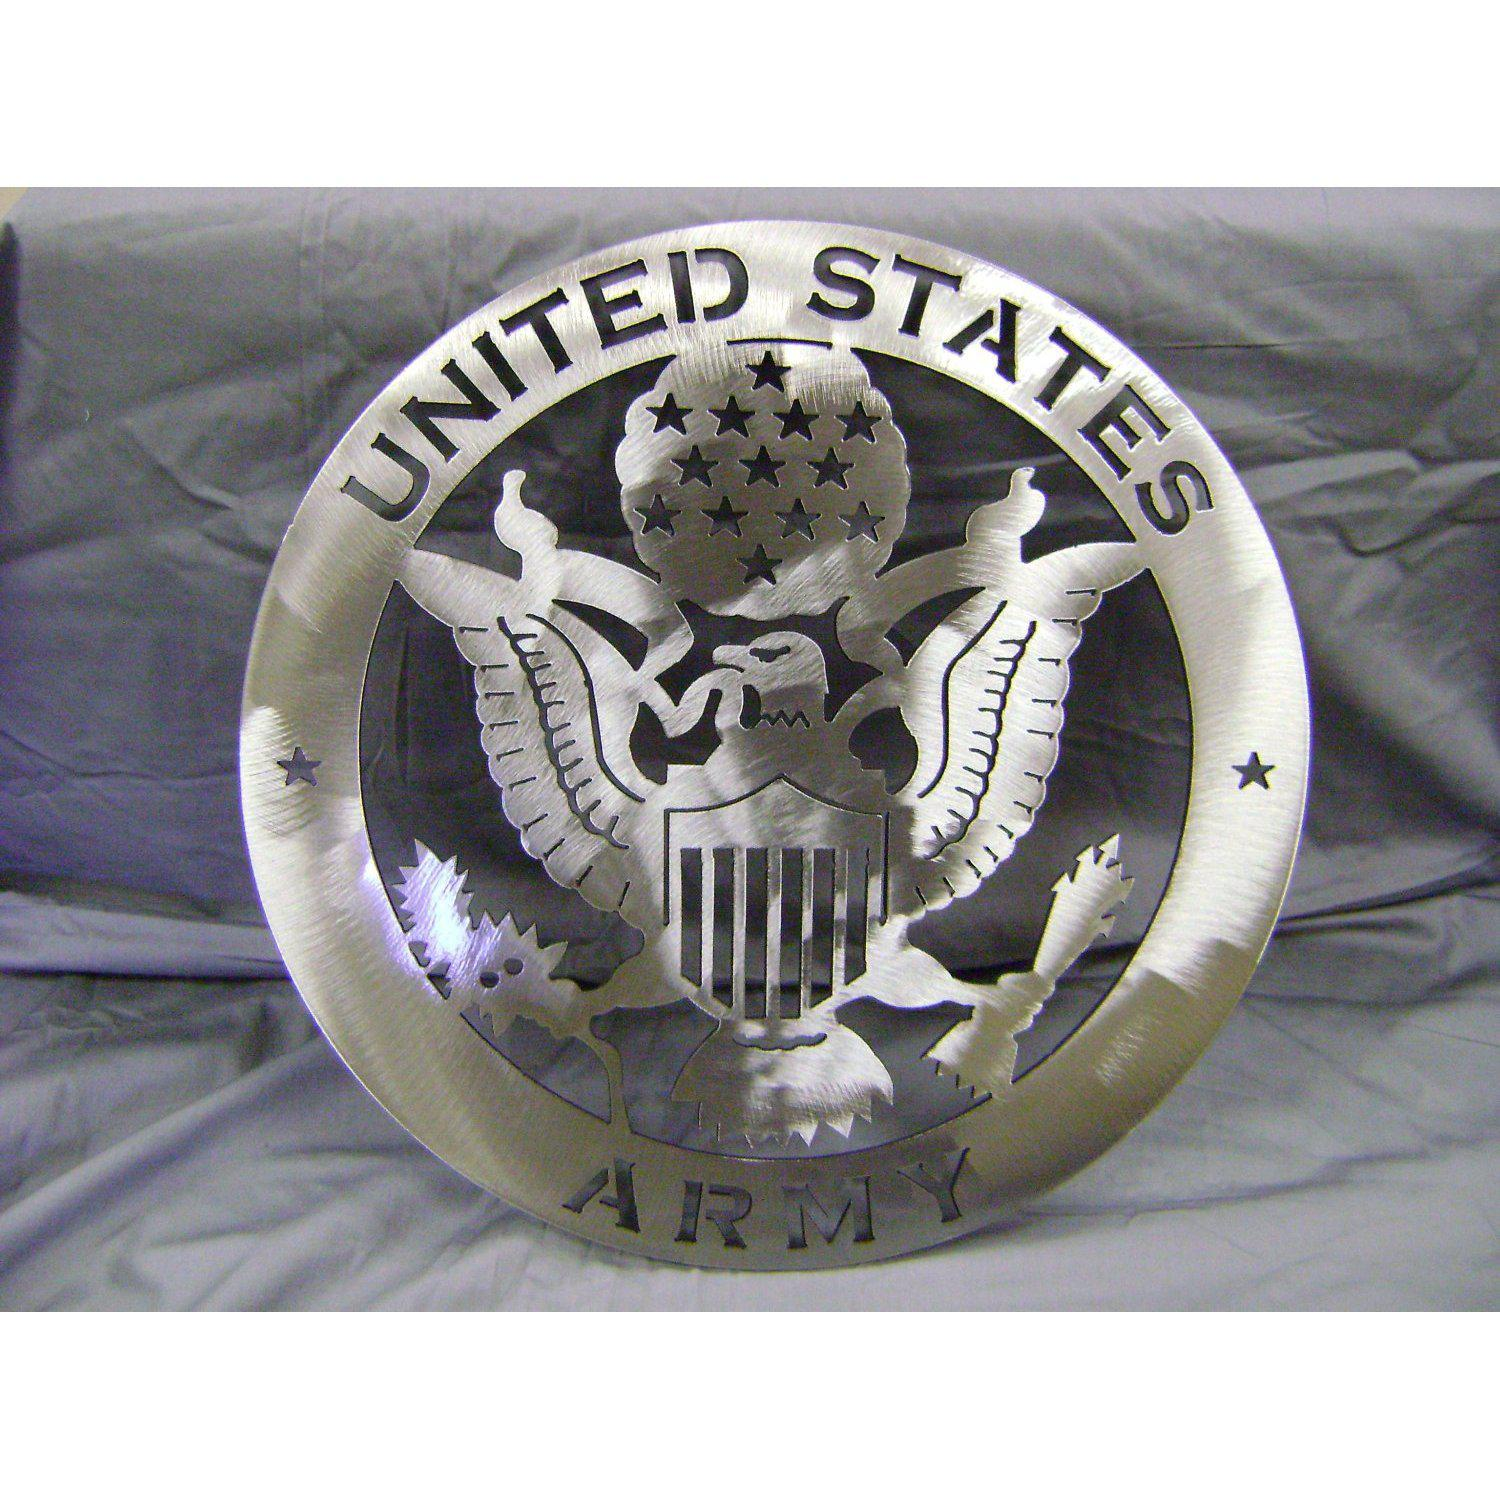 United States Army Emblem - Military Sign - Stainless Steel Metal Wall Art